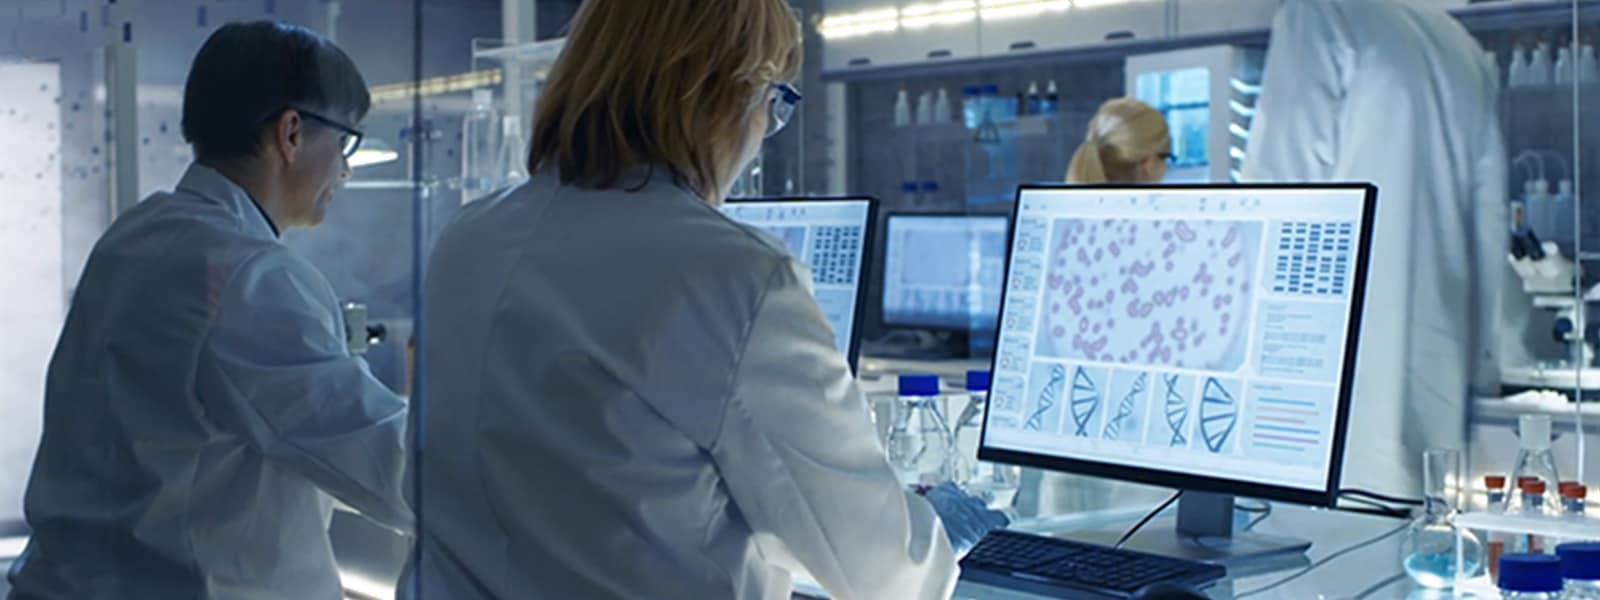 Technician works in front a screen displaying DNA sequences.